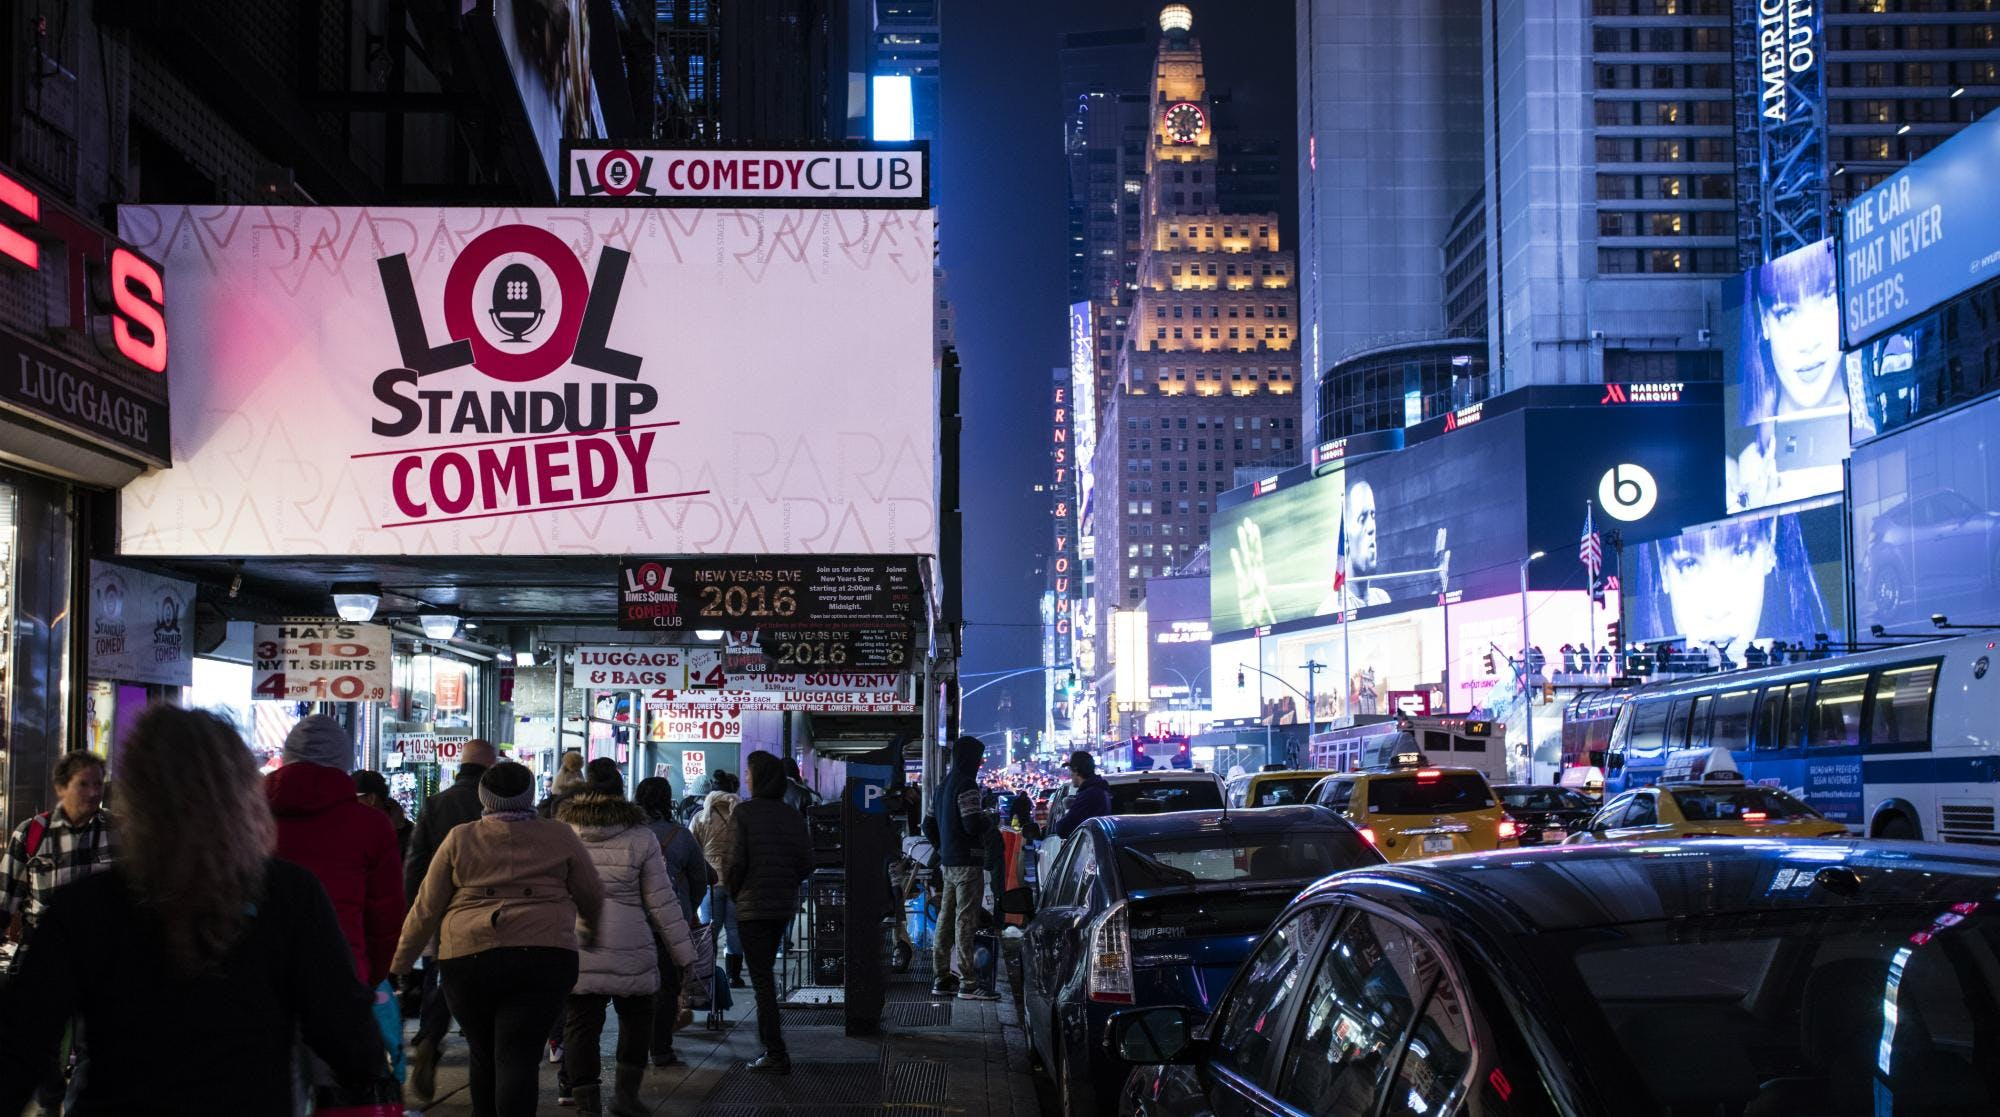 LOL Times Square Comedy Club - NYC Comedy Clubs